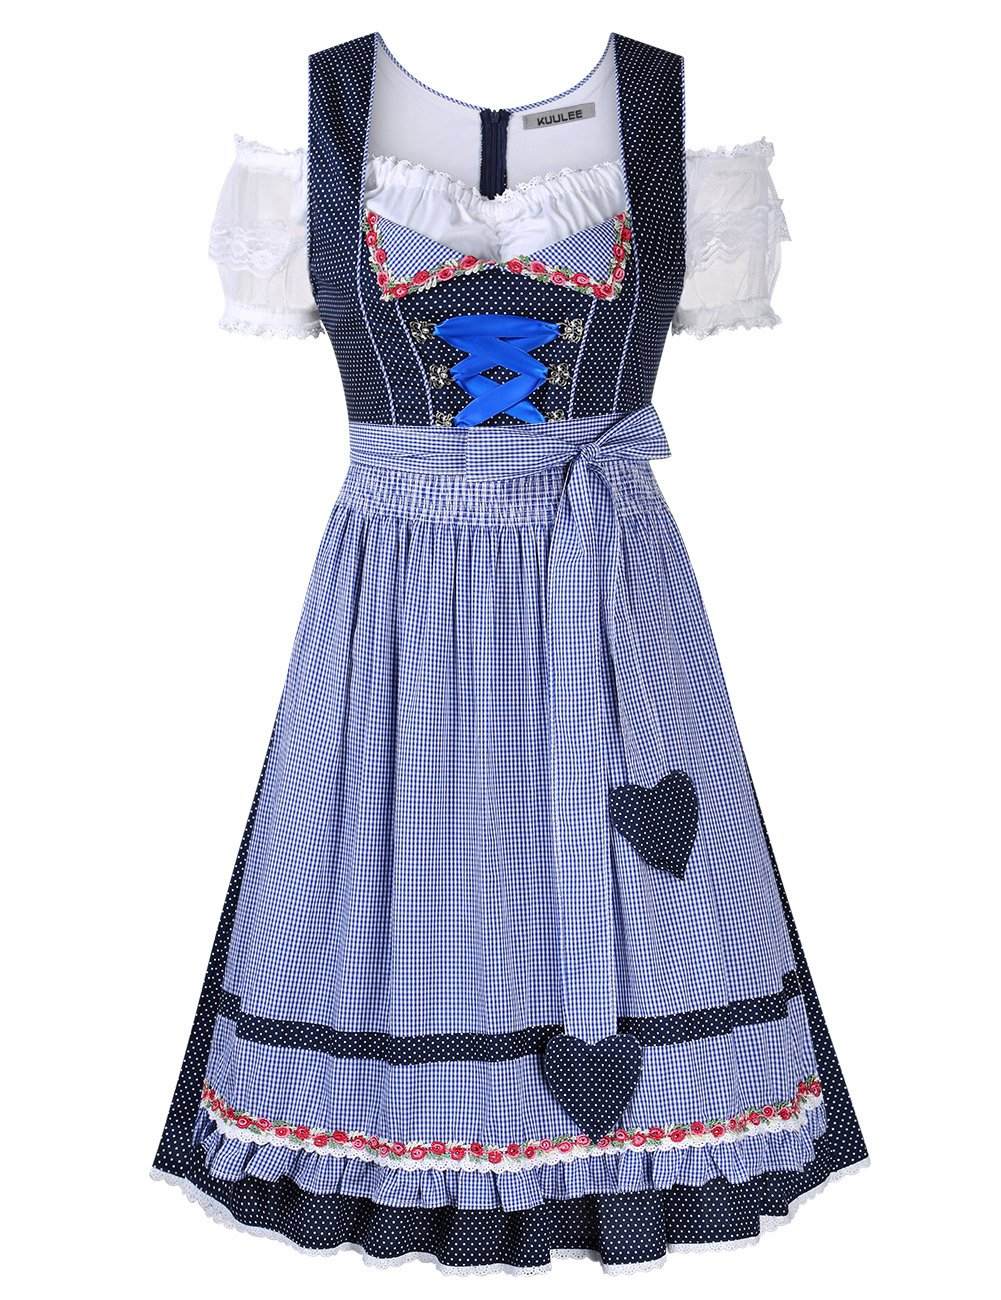 Leoie Kuulee Women's Three Piece Suits Formal Dress Dot Embroidery Lace Short Sleeve Fashion Party Dress for Oktoberfest Blue Dot 40